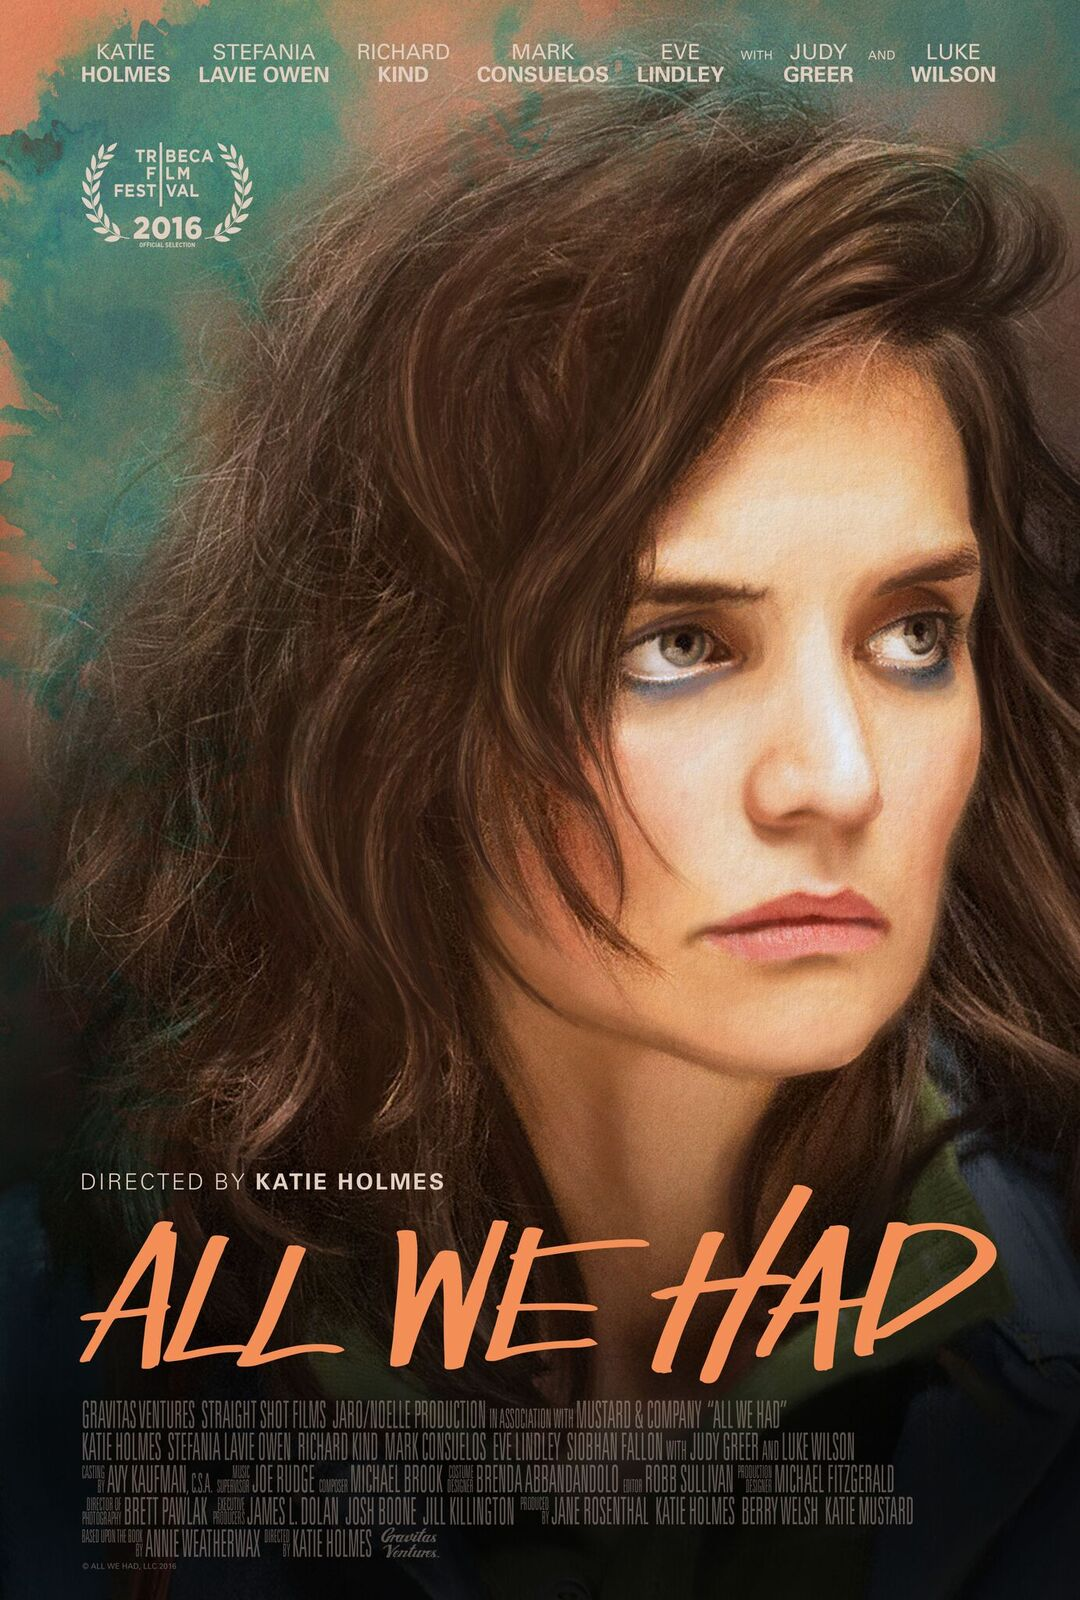 Katie Holmes Discovers All We Had in Drama's Theatrical Trailer and Poster Debut